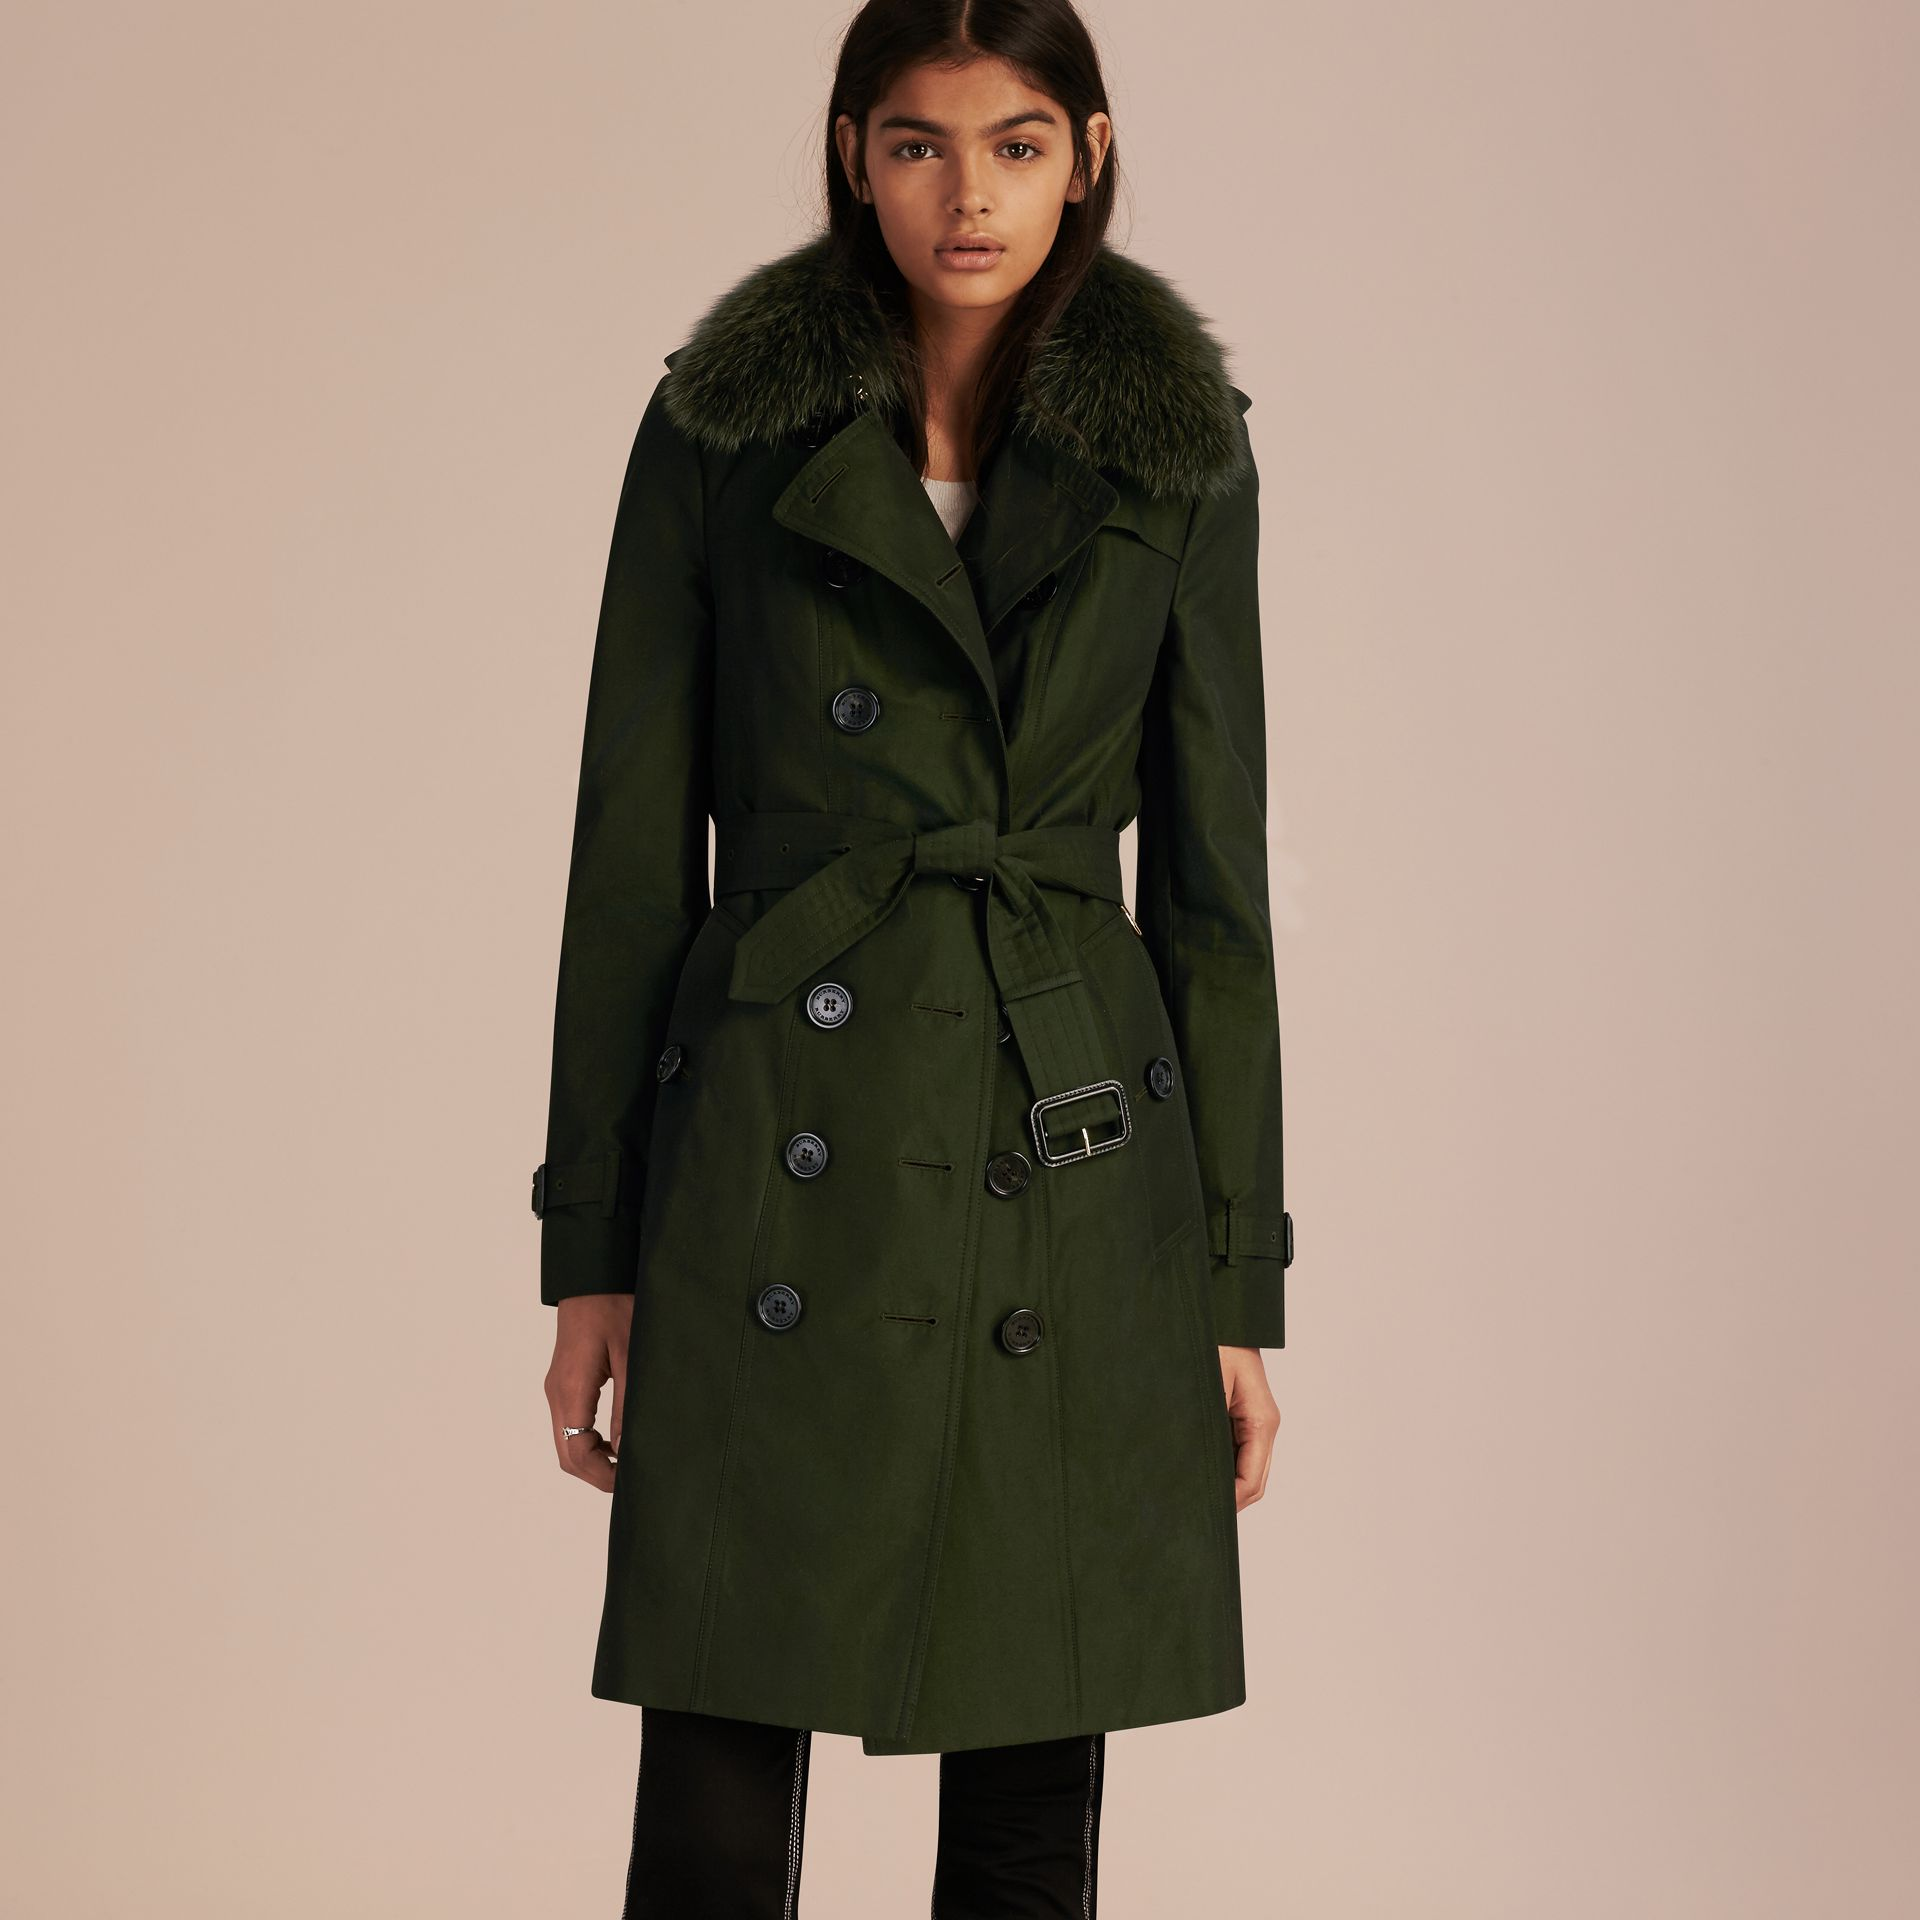 Dark cedar green Cotton Gabardine Trench Coat with Detachable Fur Trim Dark Cedar Green - gallery image 7